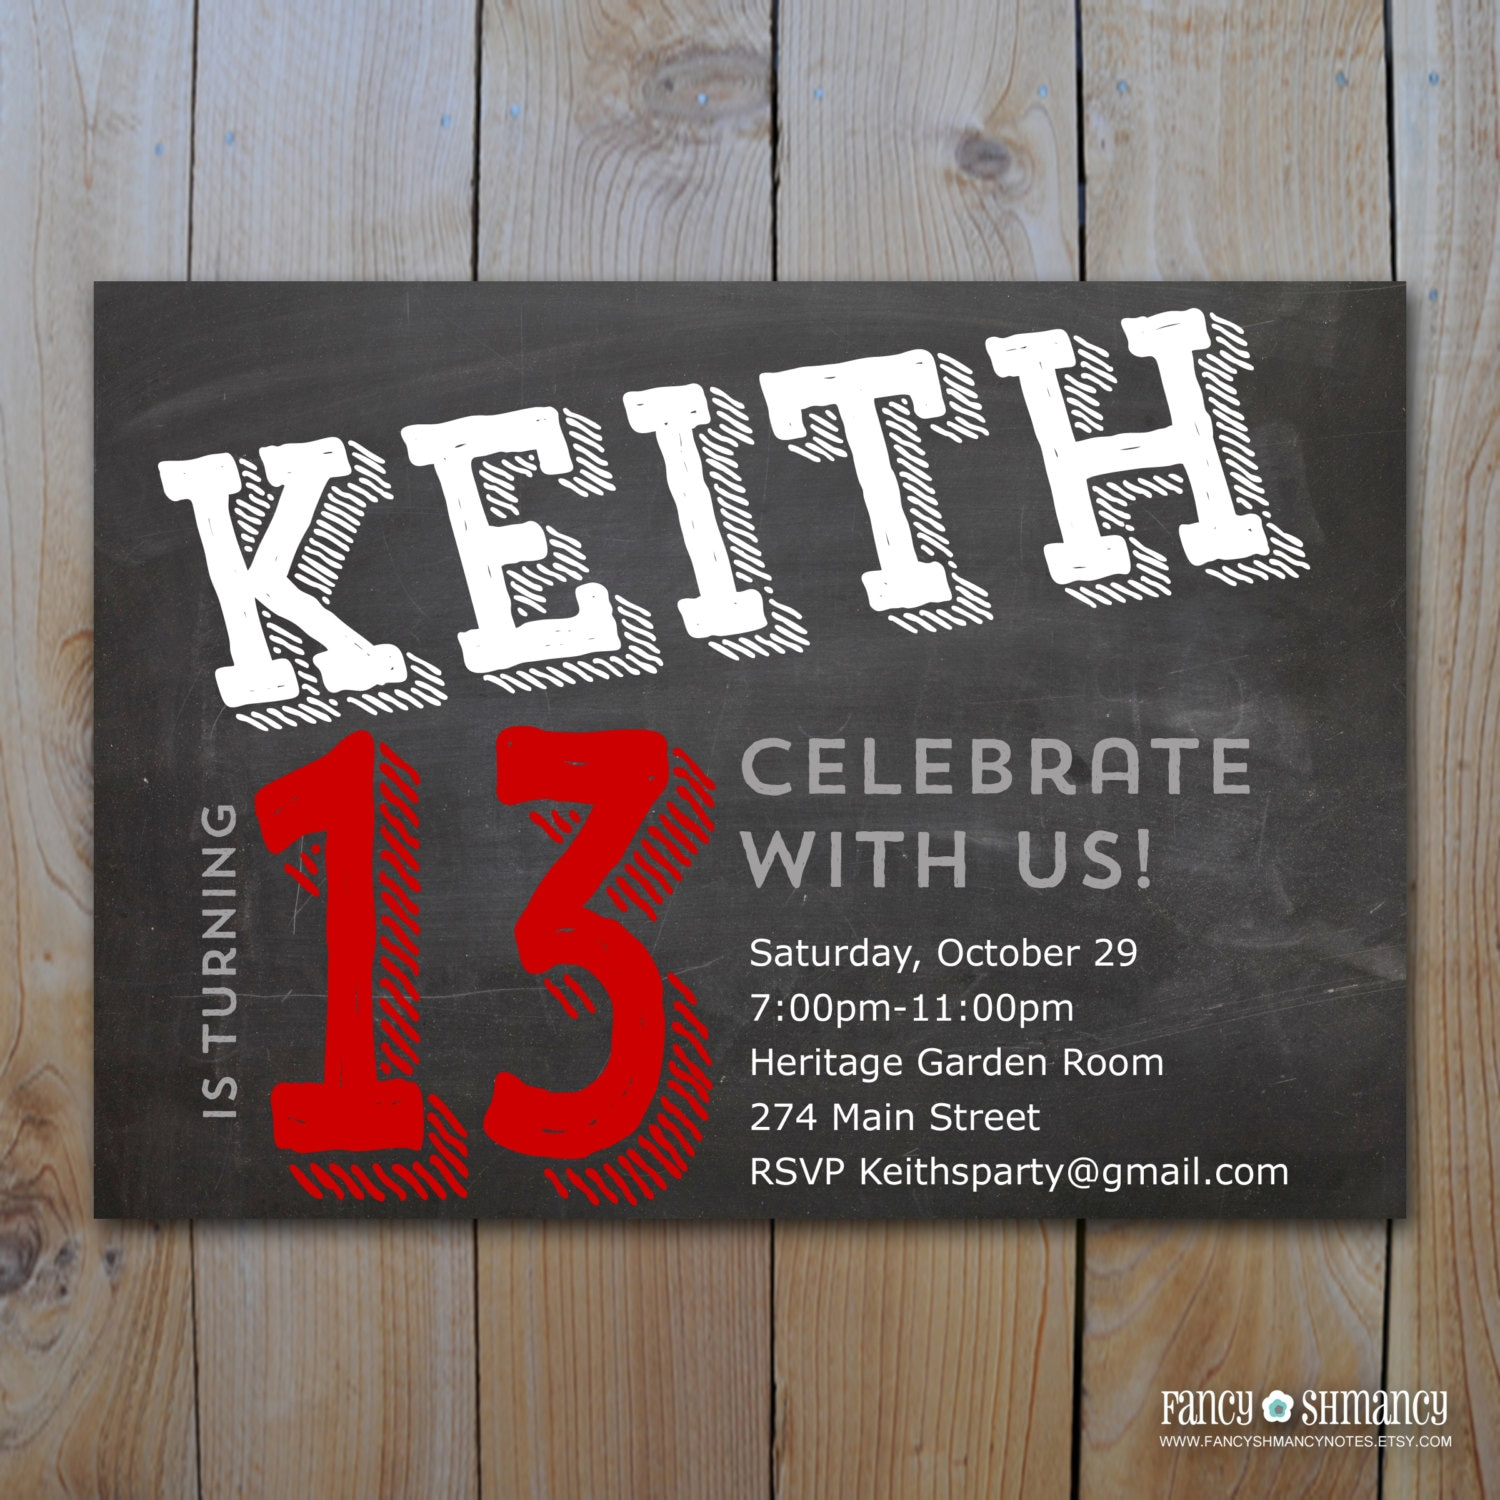 13th birthday party invitations for boys akbaeenw 13th birthday party invitations for boys 13th birthday party invitations announcements zazzle 13th birthday party invitations filmwisefo